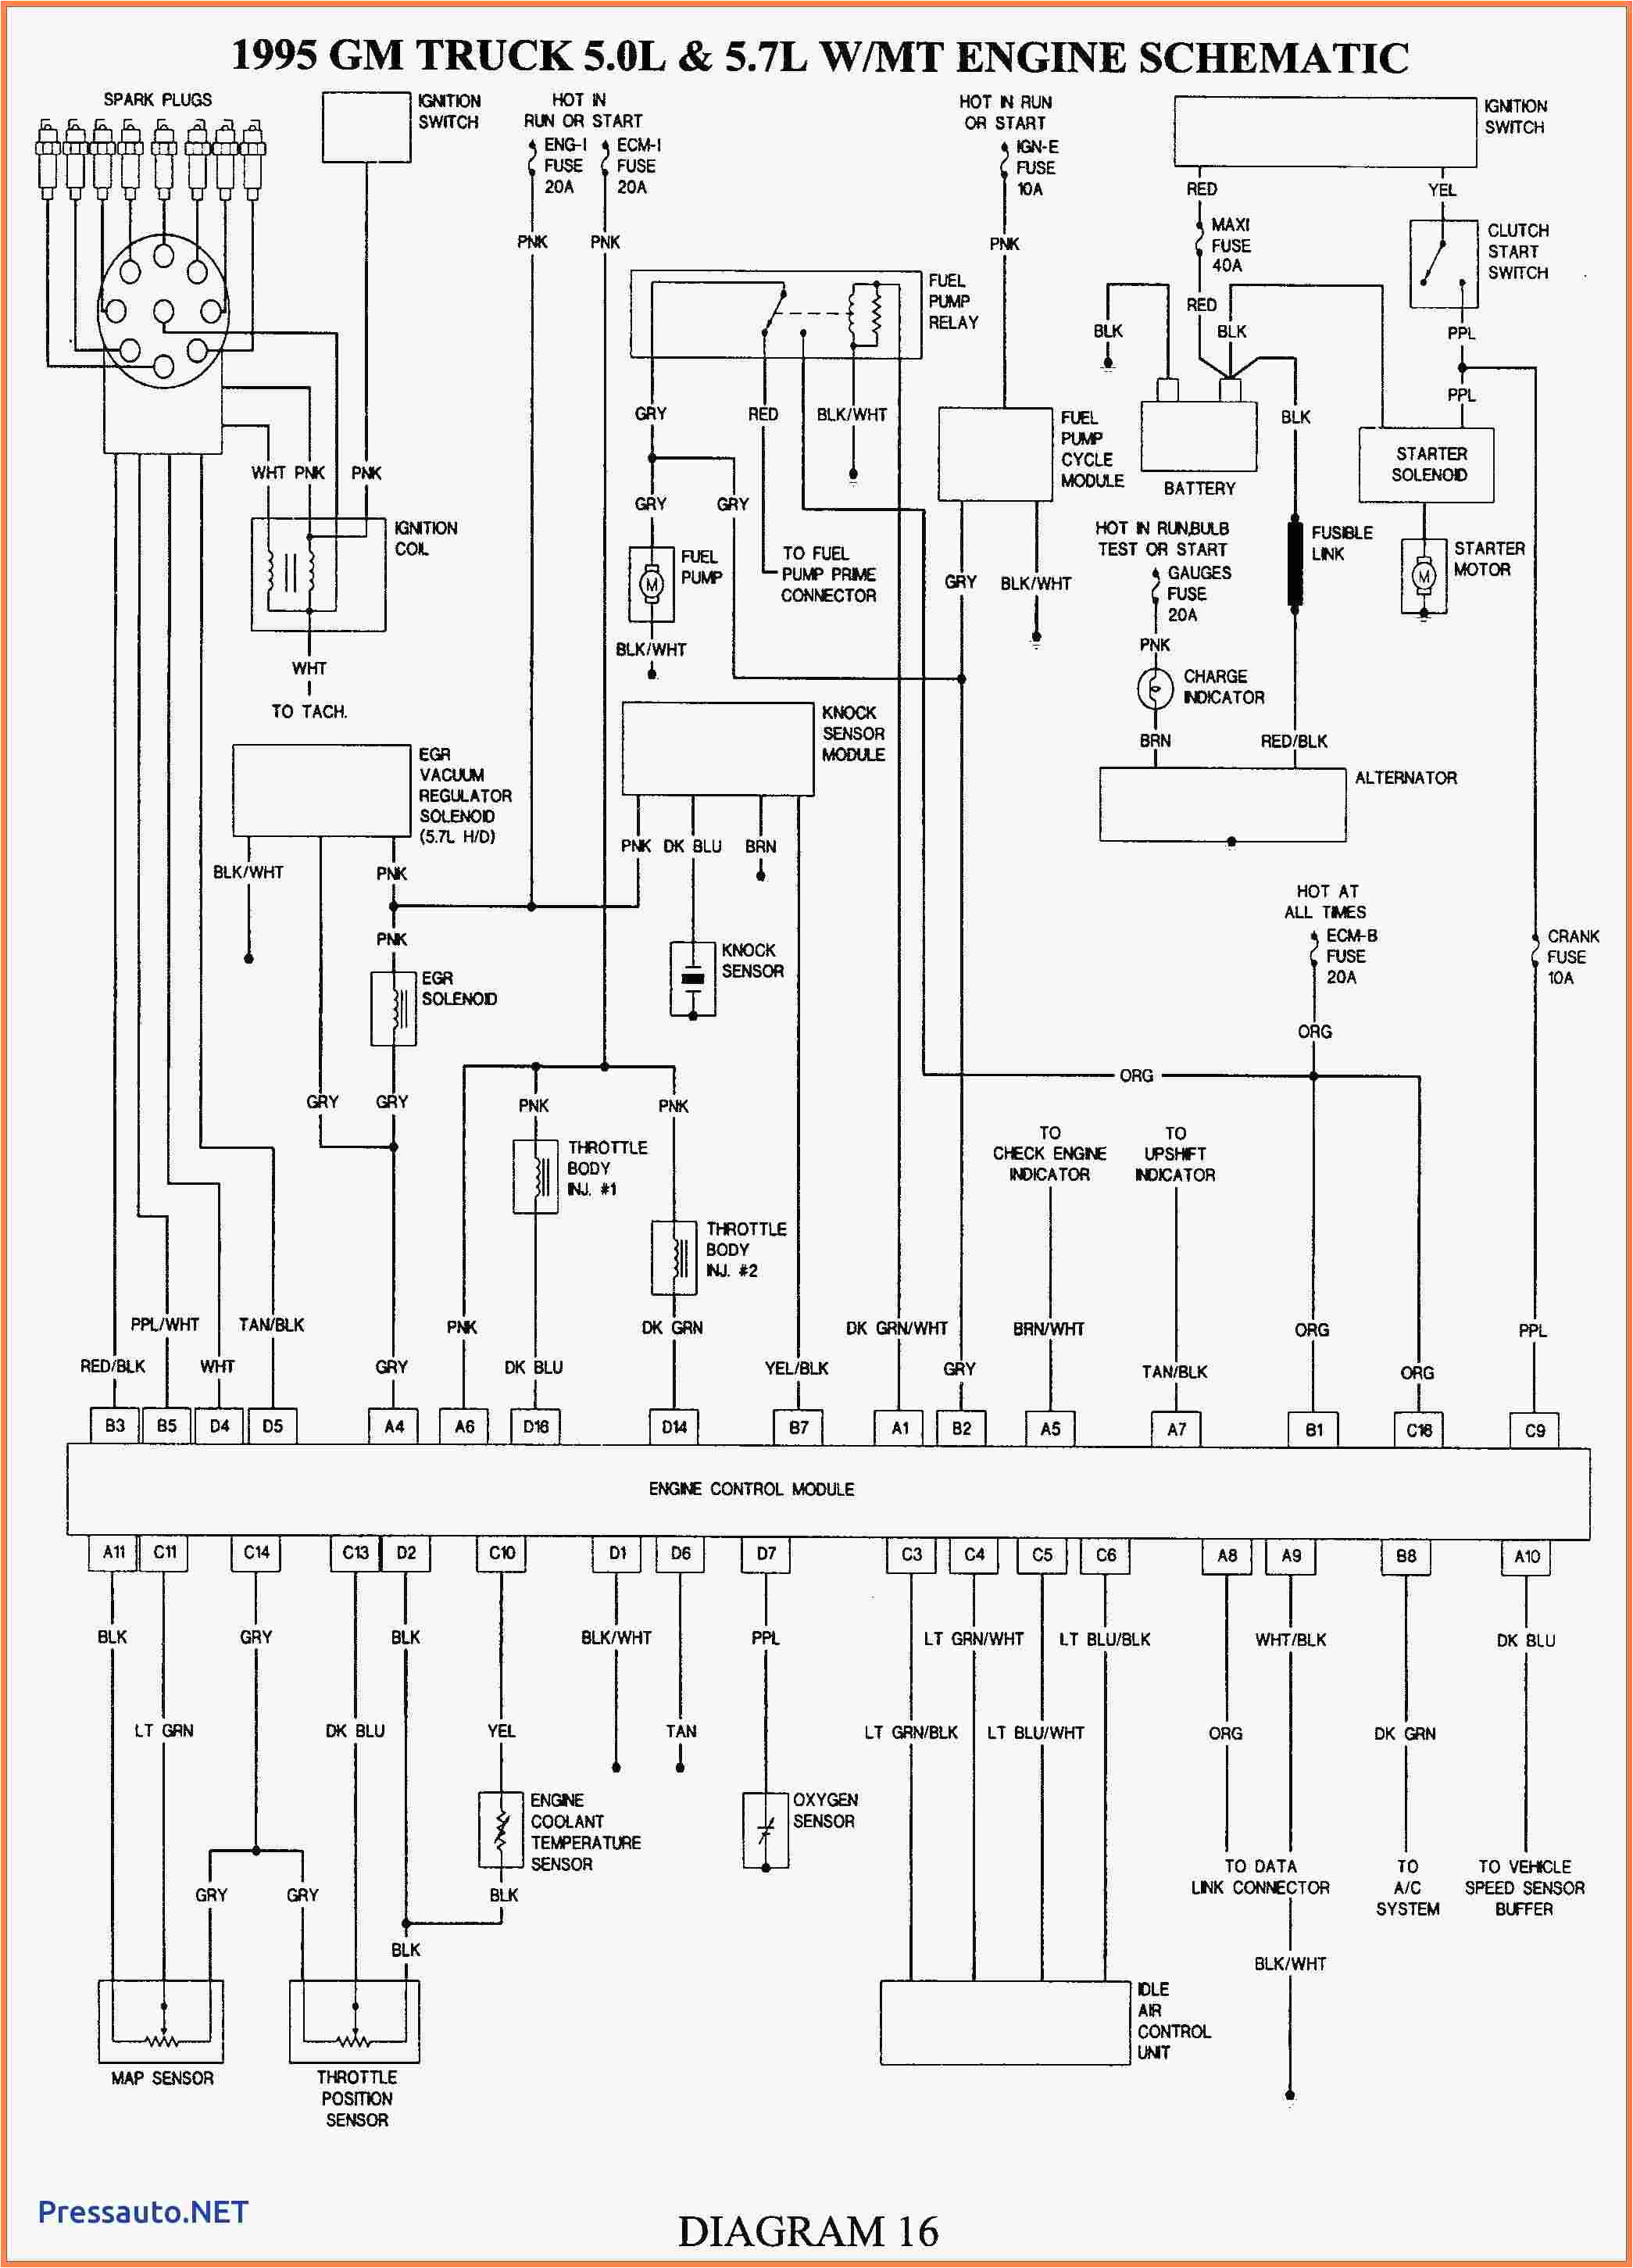 1994 chevy engine diagram wiring diagram show 1994 chevy silverado 1500 engine diagram 1994 chevy 1500